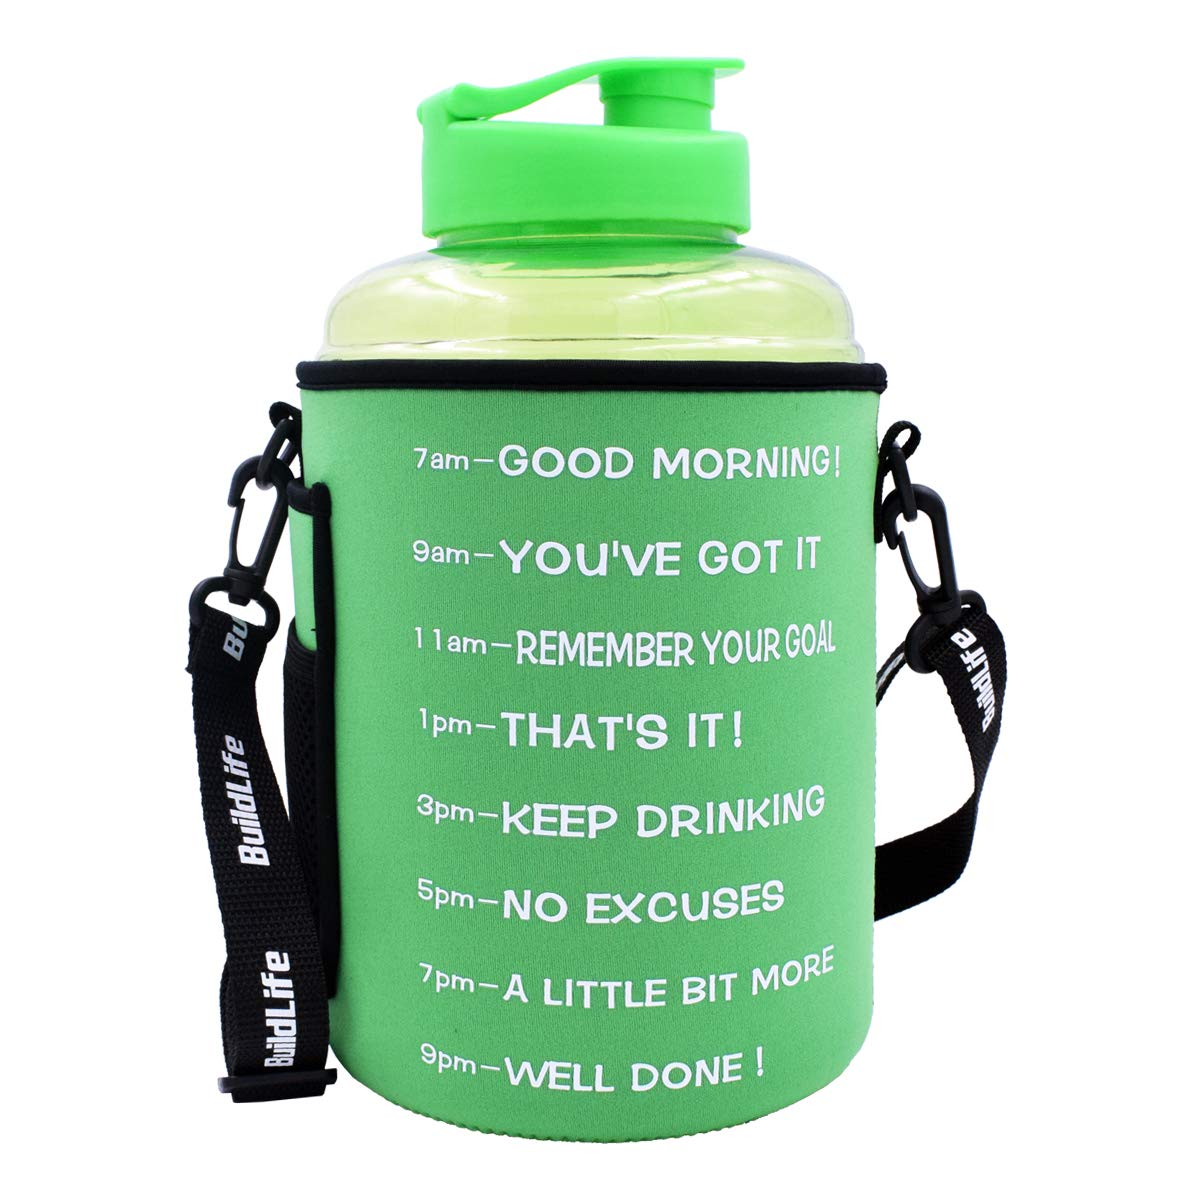 BuildLife 1 Gallon(128OZ) Sports Water Bottle Inspirational Fitness Workout Wide Mouth with Time Marker and Sleeve for Measuring Your H2O Intake BPA Free (1 Gallon, 1 Gallon-Green with Sleeve)